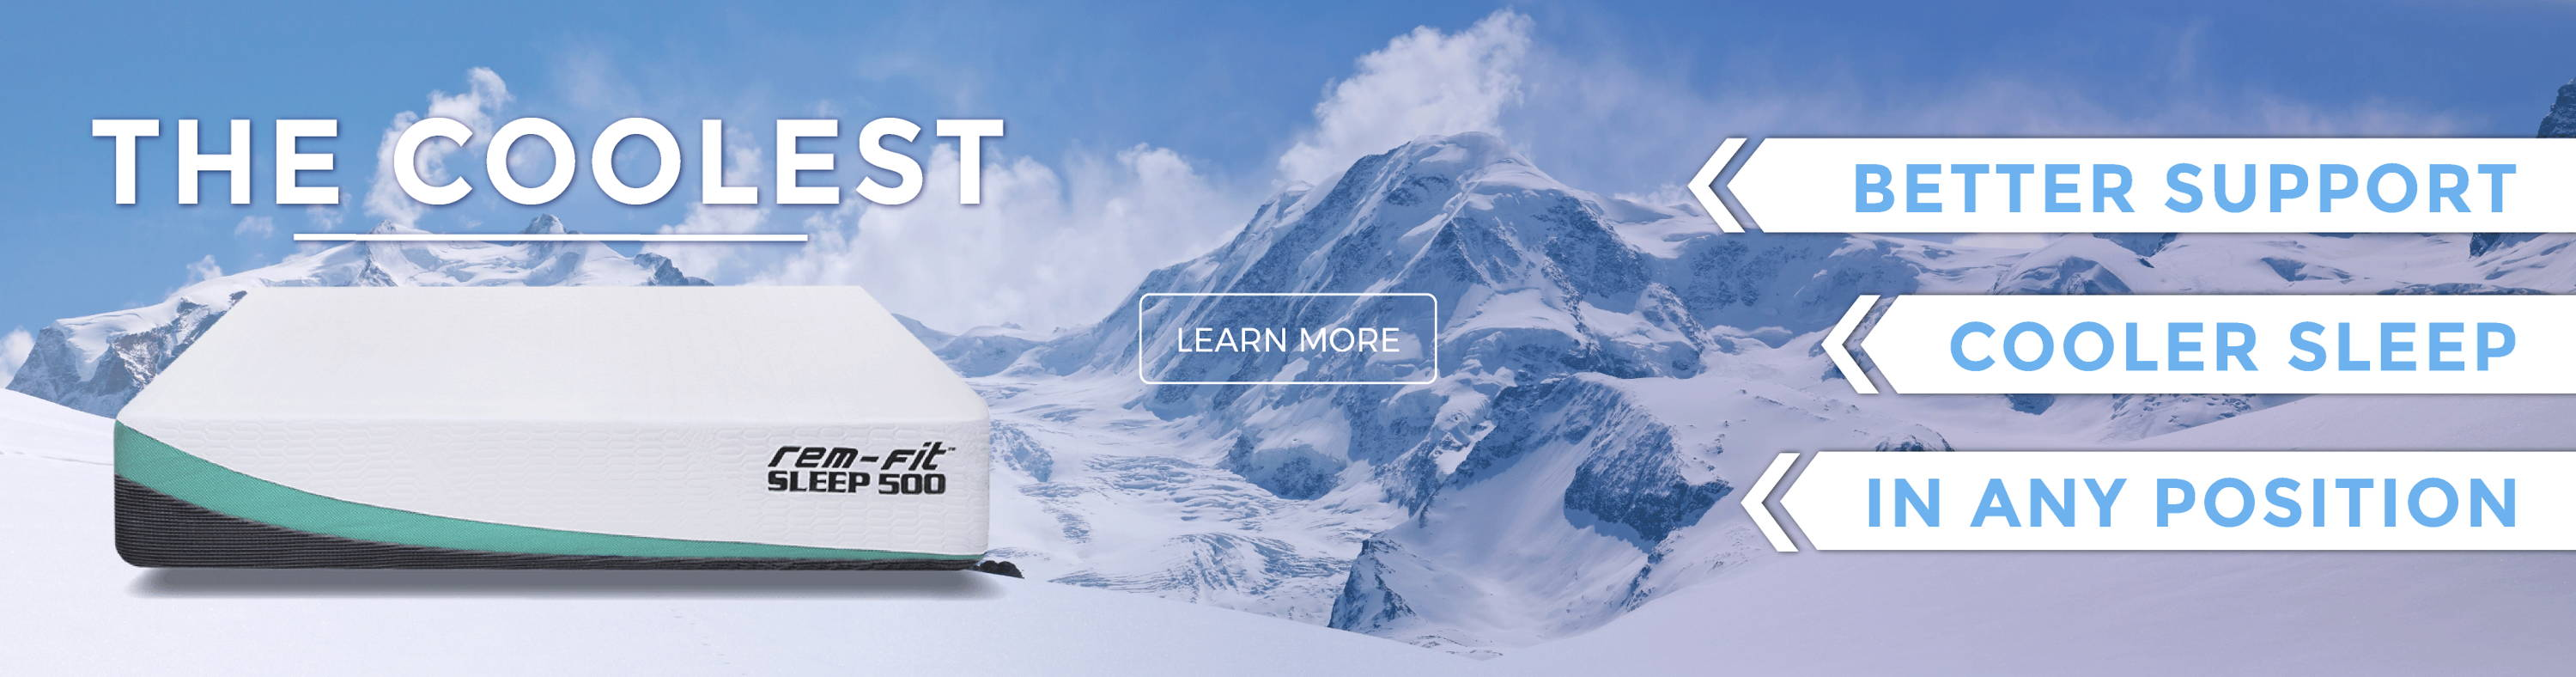 The Coolest Mattress: Sleep 500. Better support, cooler sleep, in any position. Learn More